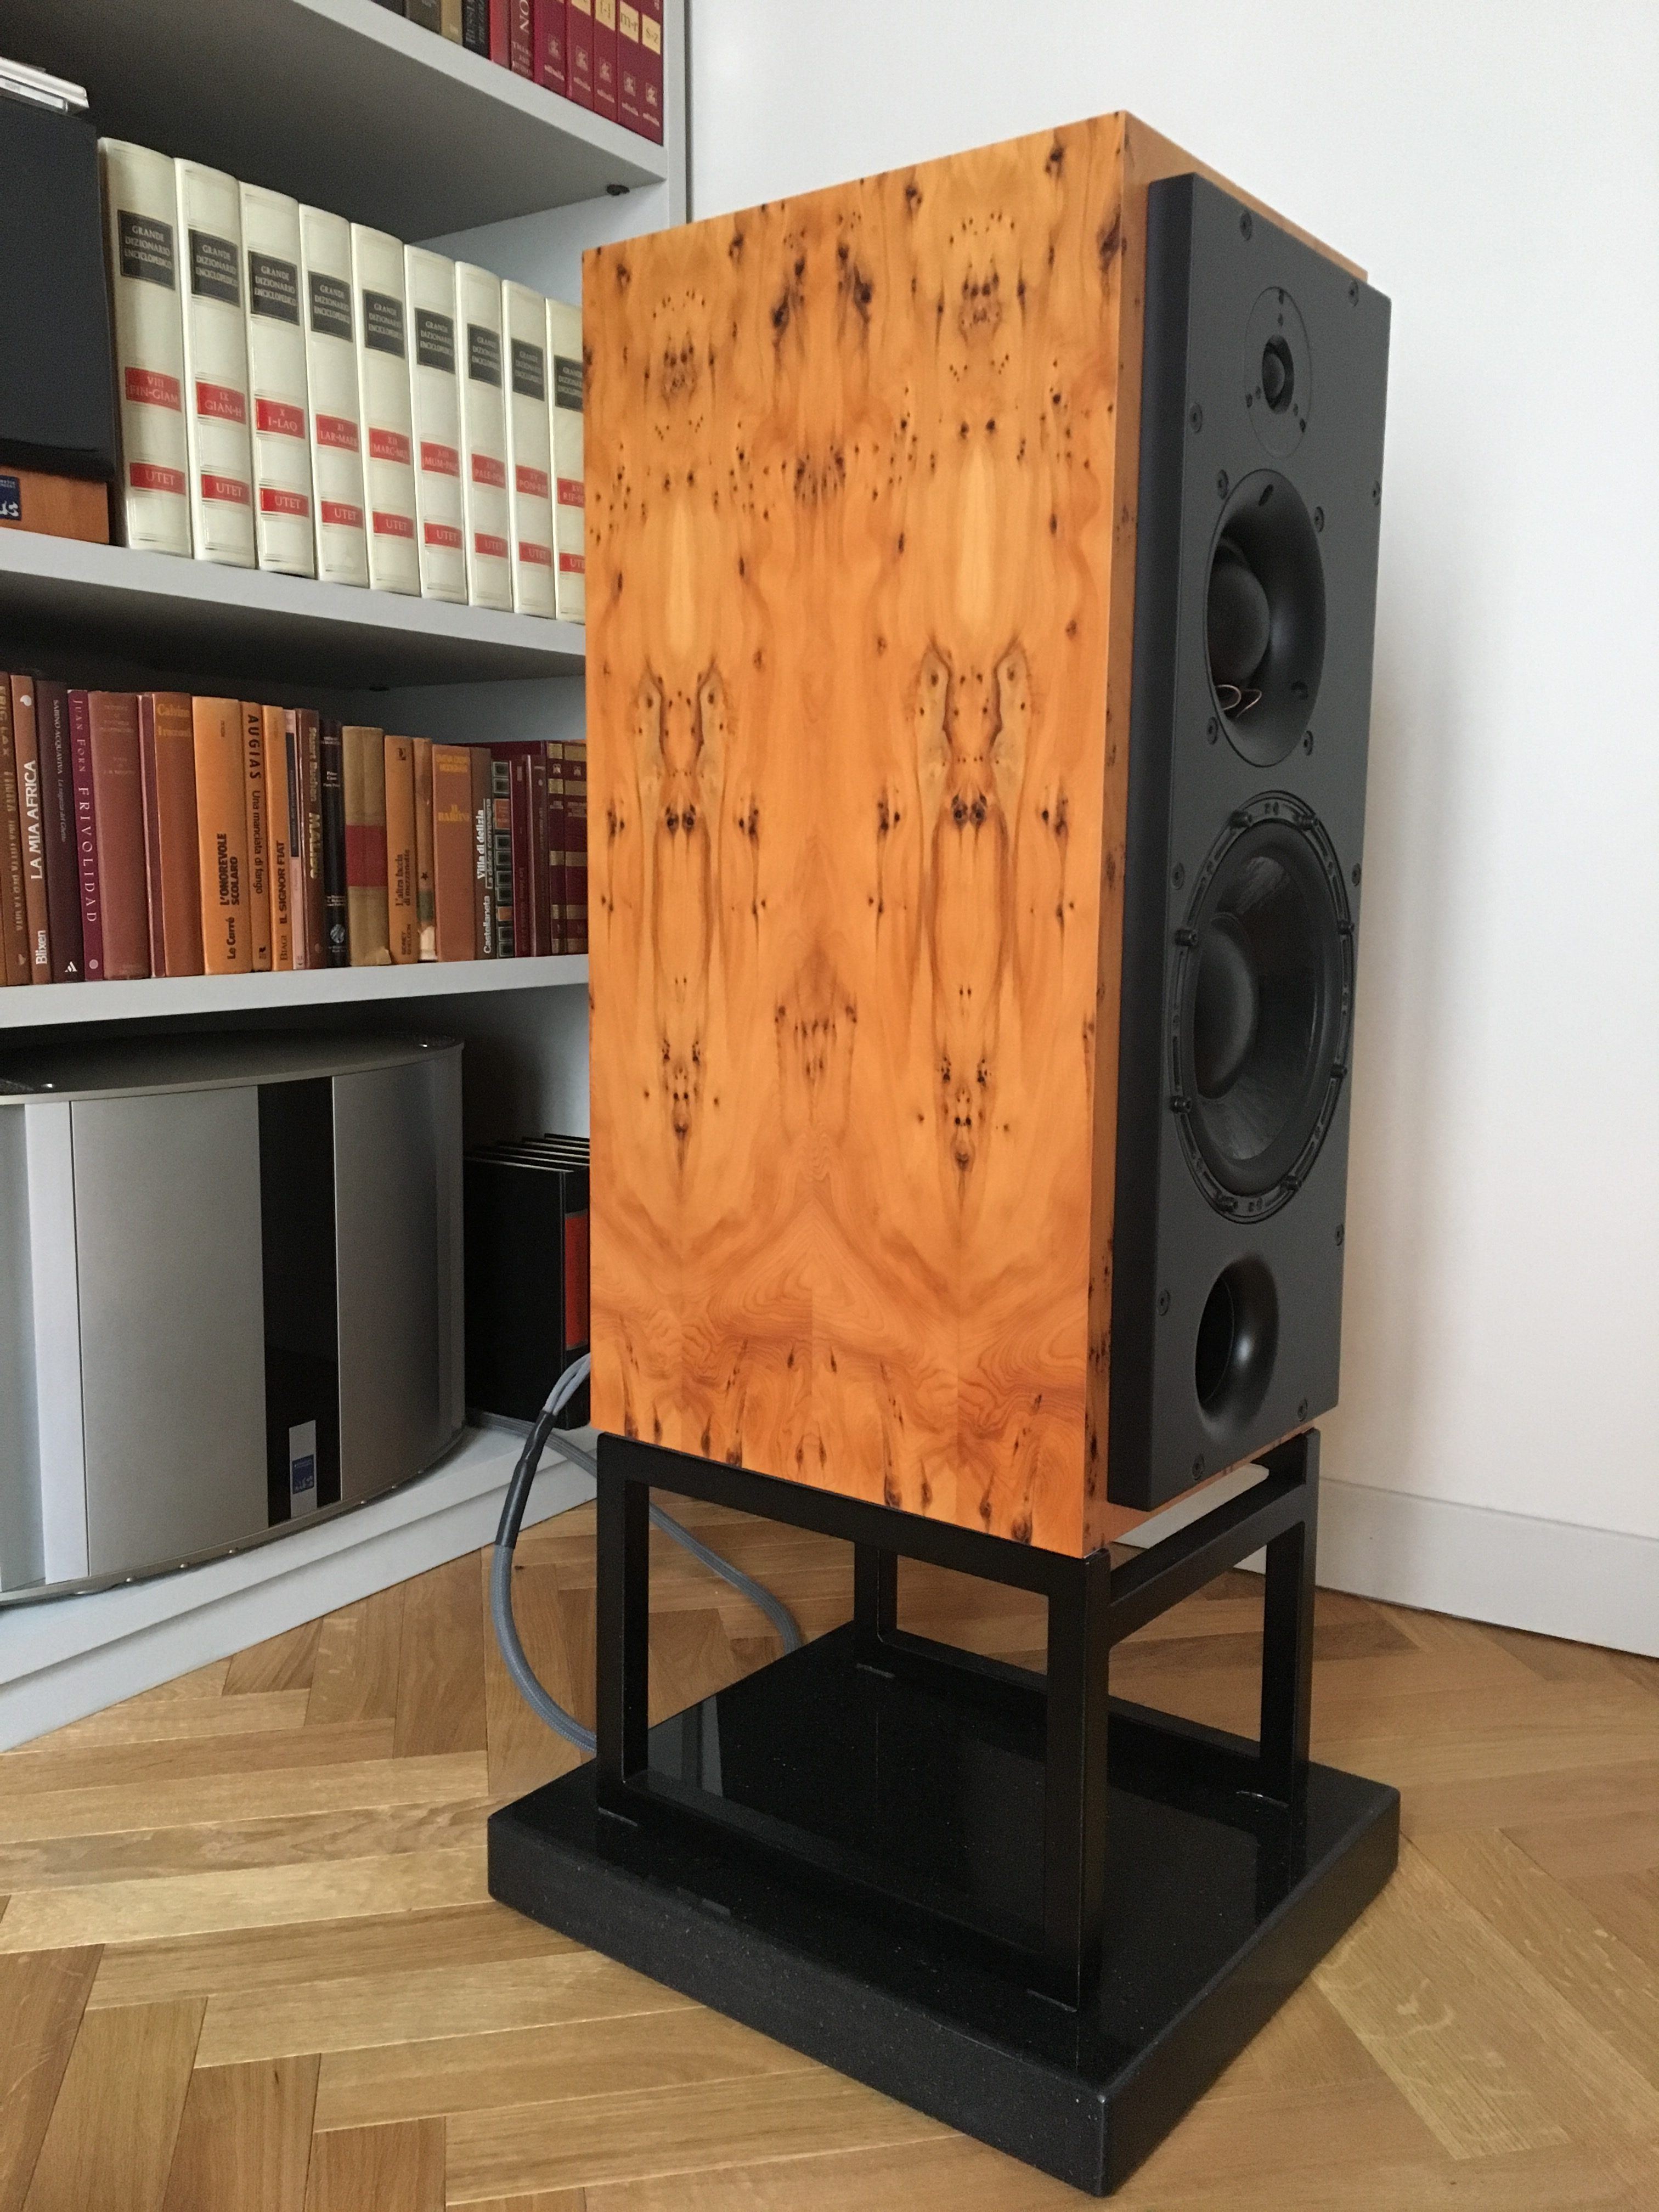 Atc Scm50a P6 Custom Choice Hifi